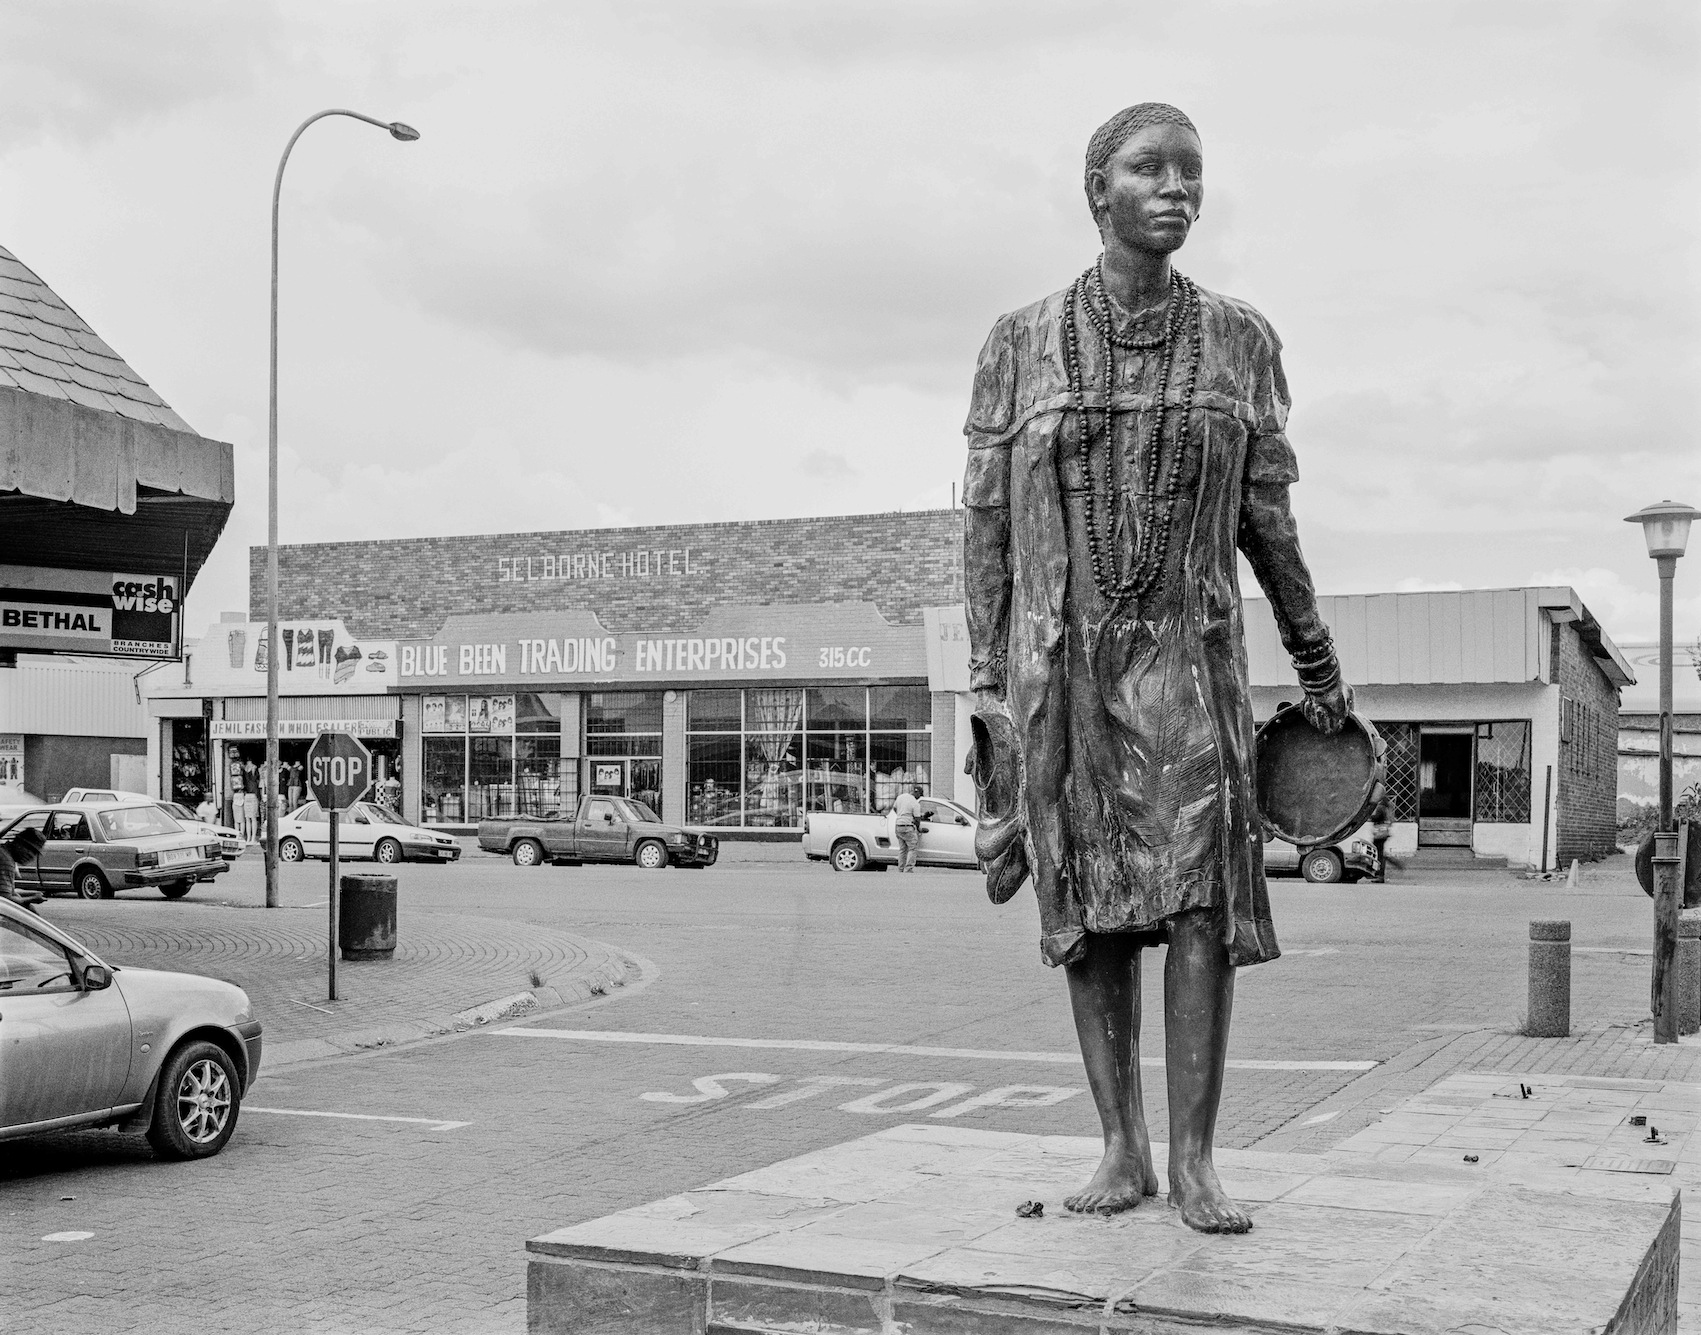 "Photograph by David Goldblatt, Memorial to Nokuthula Simelane, who became a courier for the ANC. Trapped by the Security Police in 1983, she was severely tortured, then murdered and disappeared. The sculpture is by Rohan Janse van Vuuren, Bethal. 14 February 2014.  Image courtesy of the artist and Goodman Gallery. For some 32 years her family have tried to discover where her remains were buried or destroyed. Hers is one of many cases in which the ANC government appear to have hindered prosecution of known murderers in the Security Police. (See ""Sunday Times"" May 24 2015) Corne van Tonder vandalised the sculpture, was fined R15000 and ordered to pay R214000 for its repair."